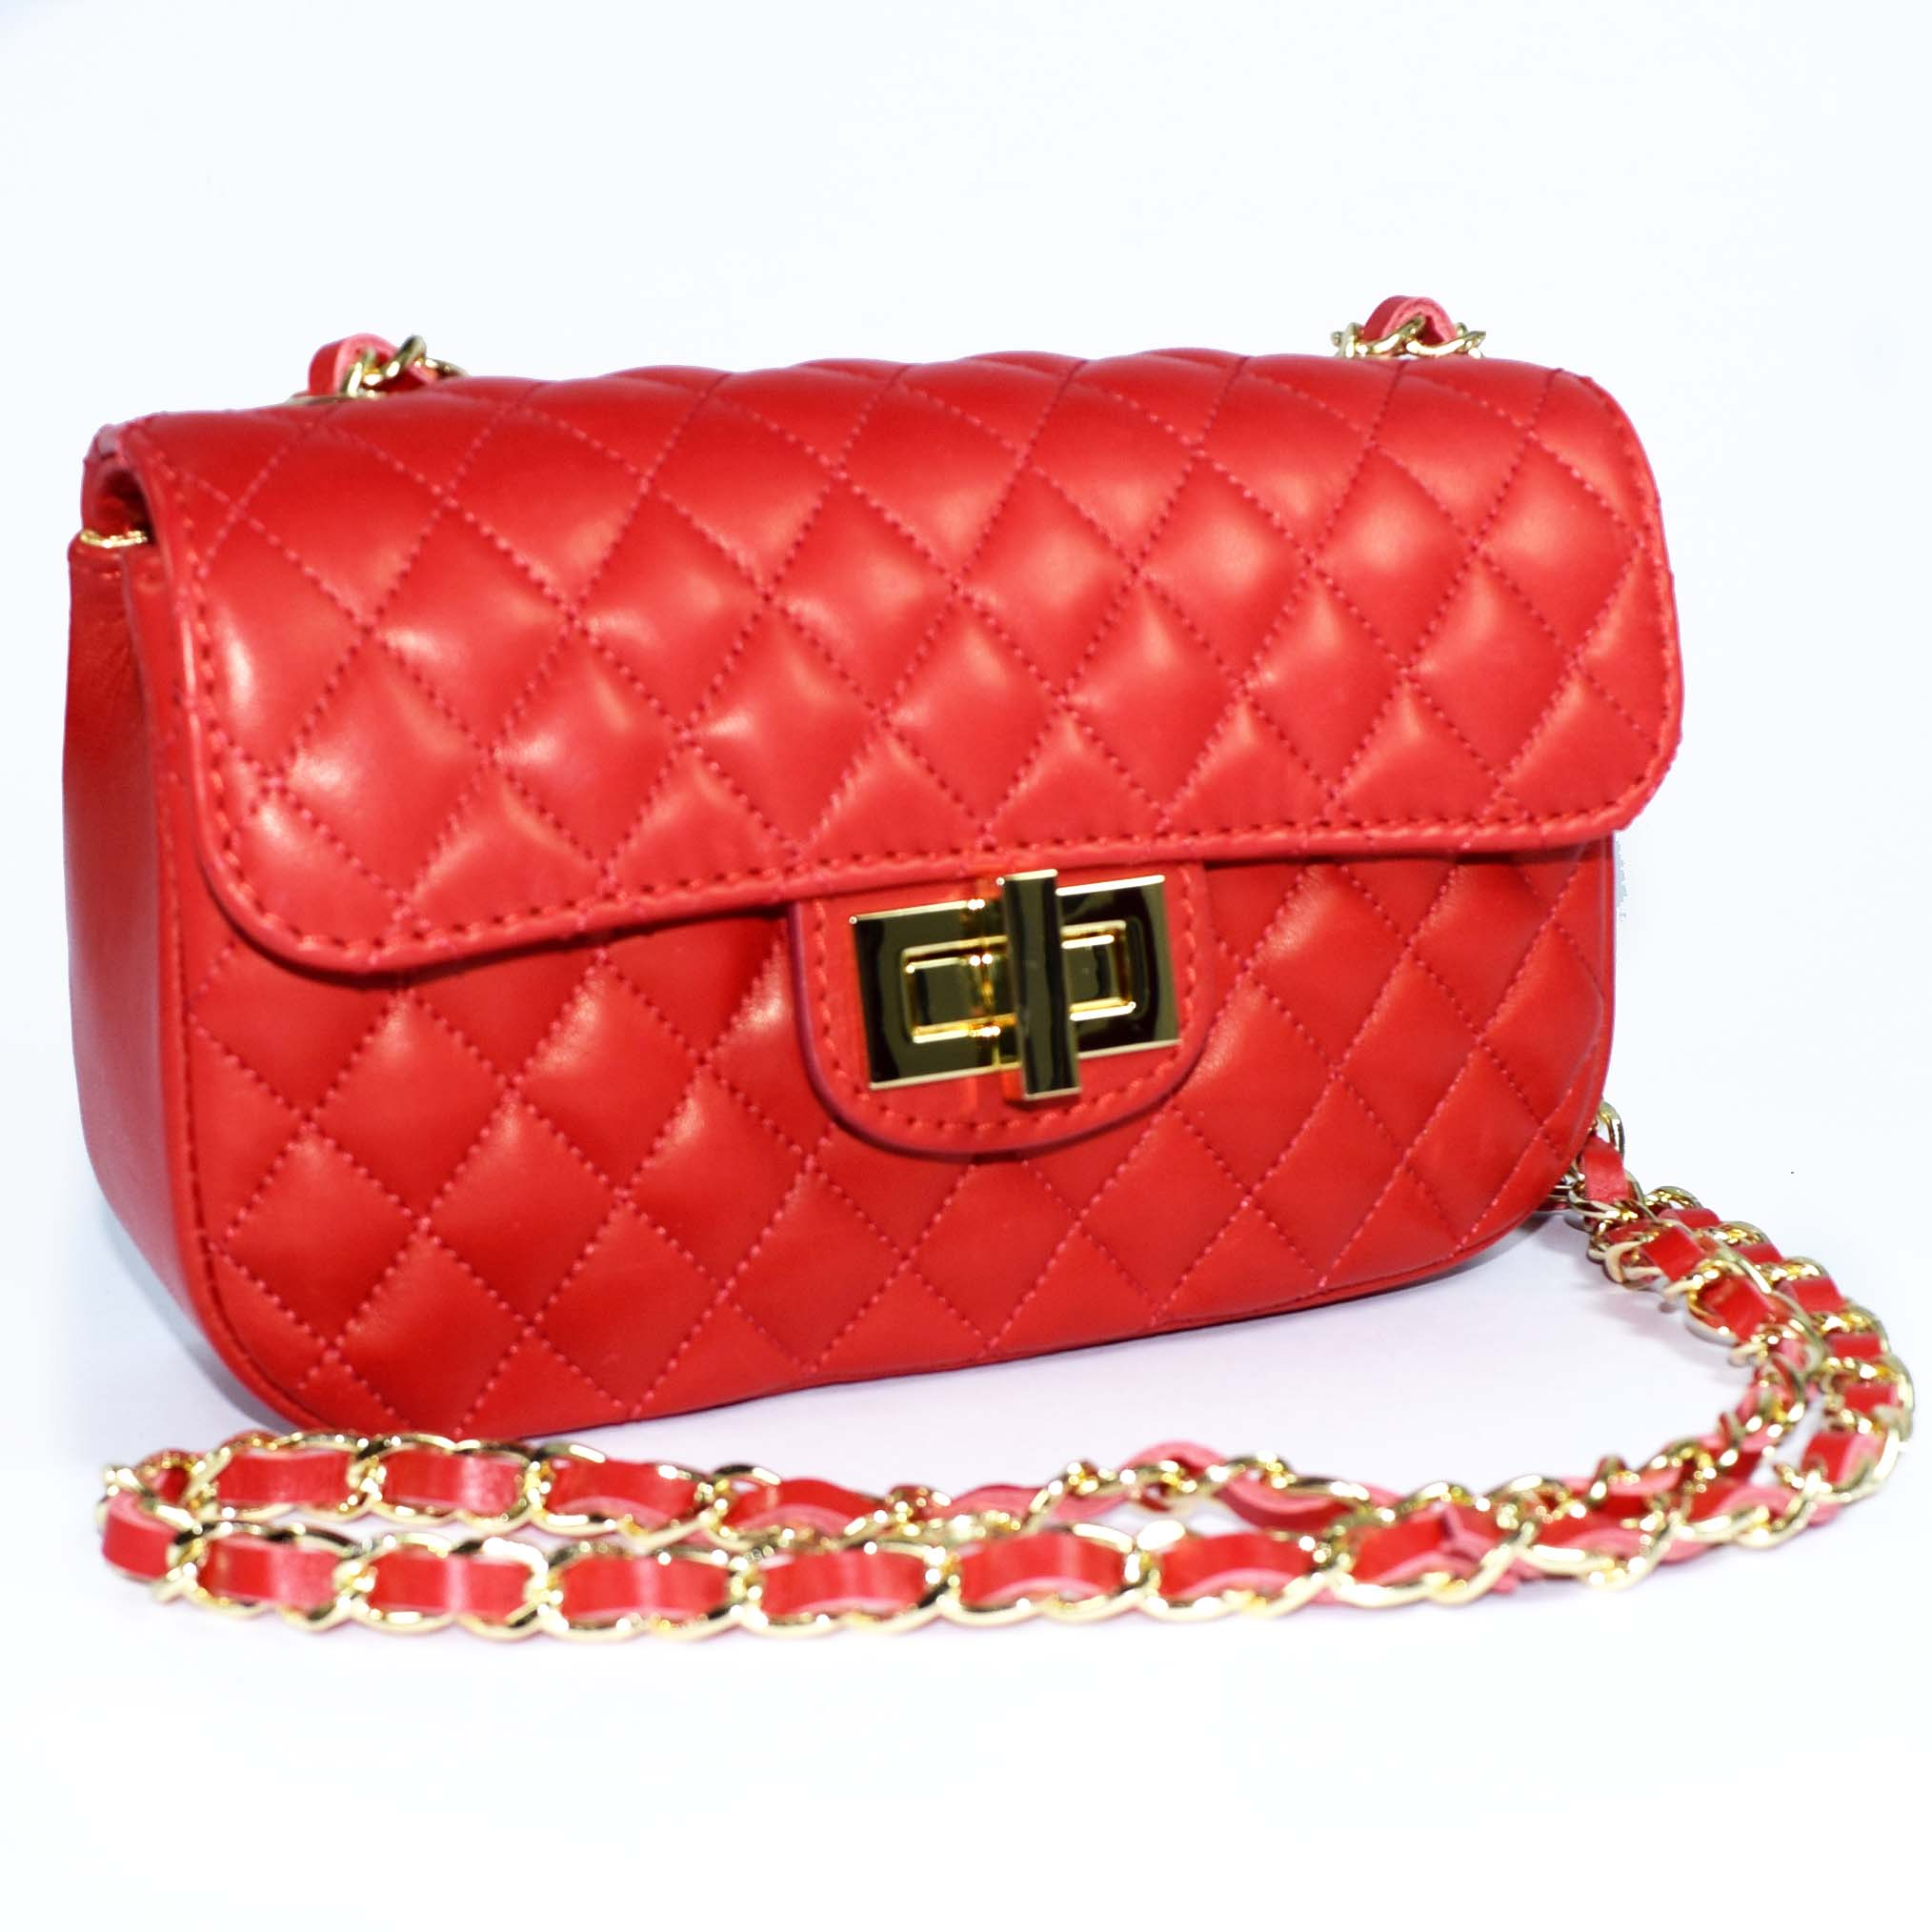 12722 bag with flap by Bottega Fiorentina